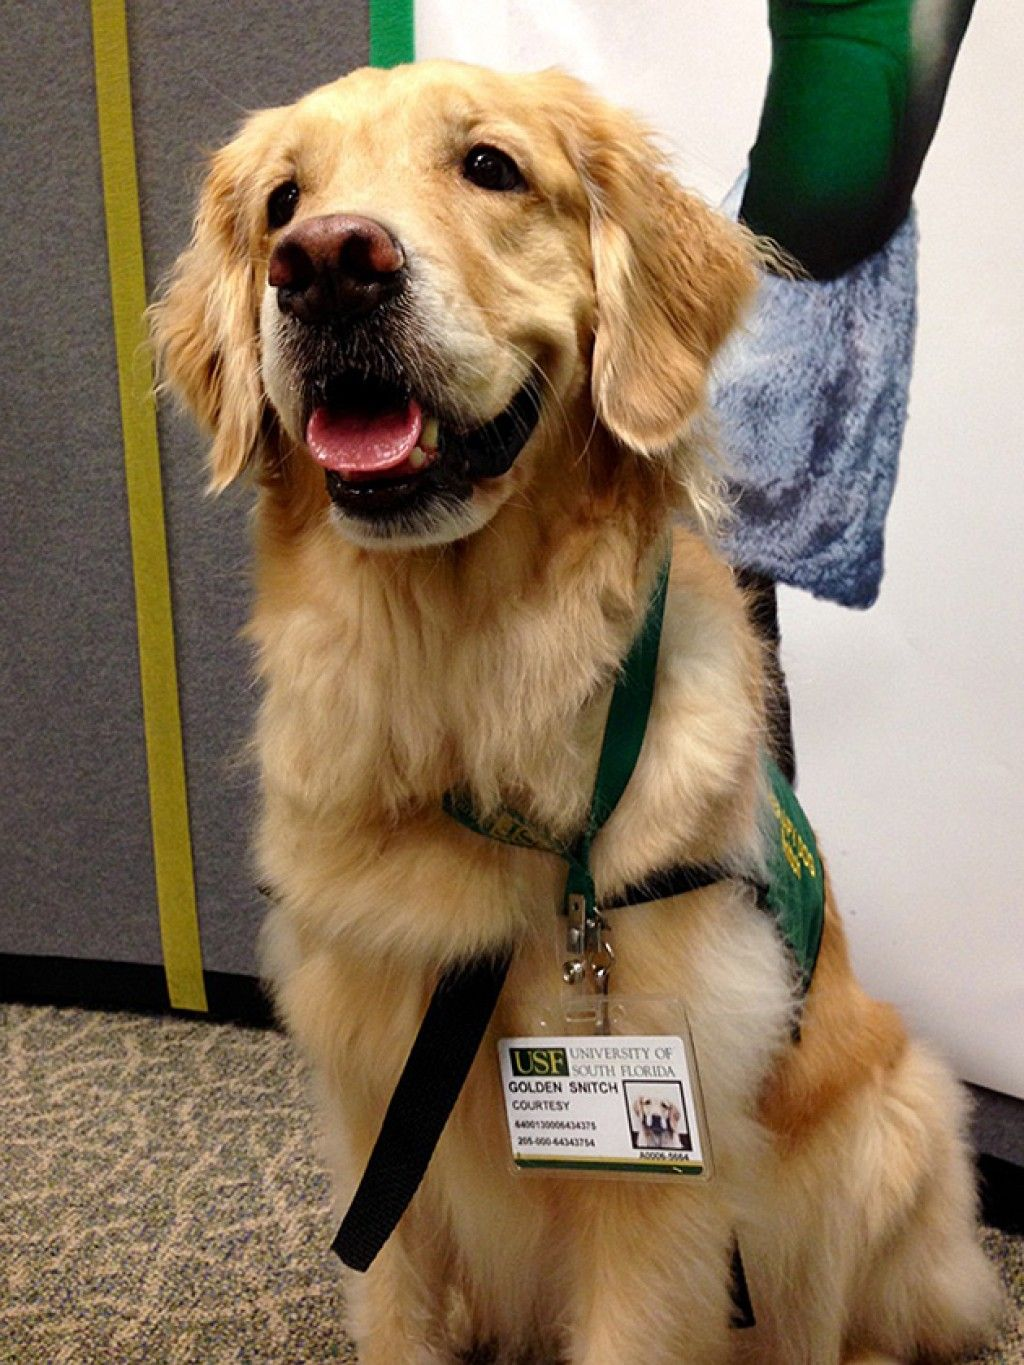 Therapy Dog Becomes Usf S Golden Snitch The Oracle Therapy